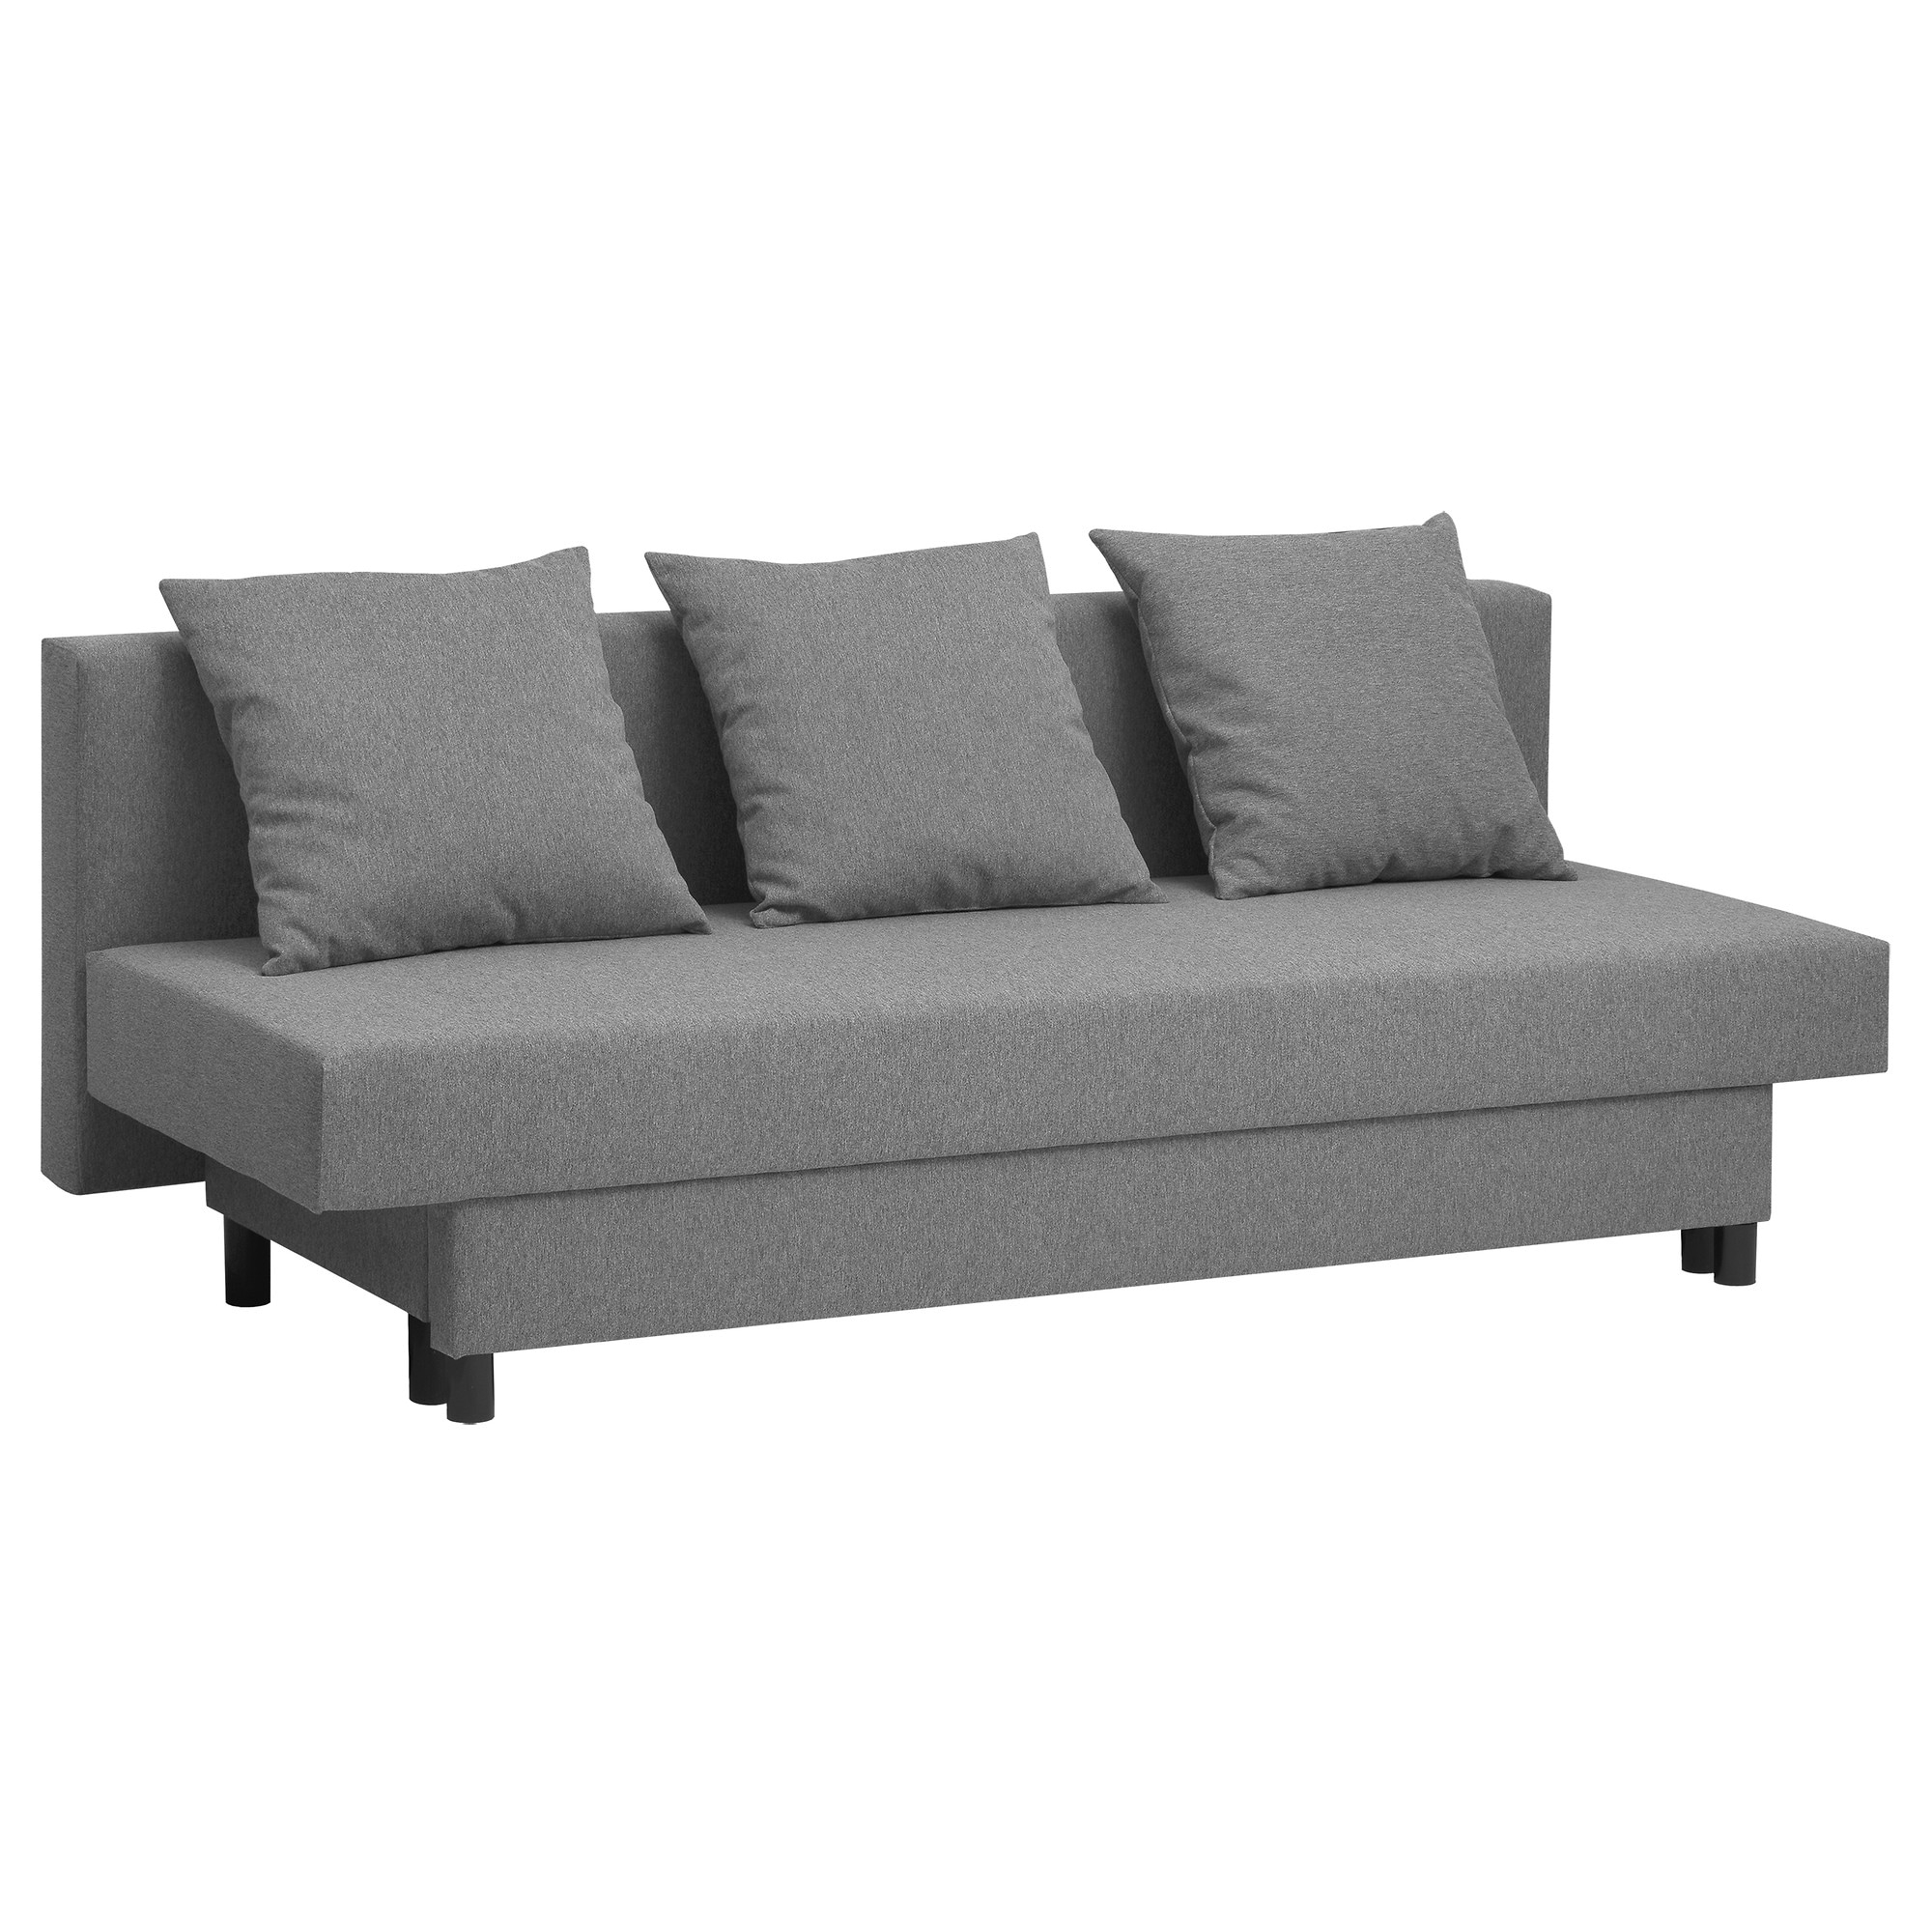 Sofas Cama Q0d4 asarum Three Seat sofa Bed Grey Ikea